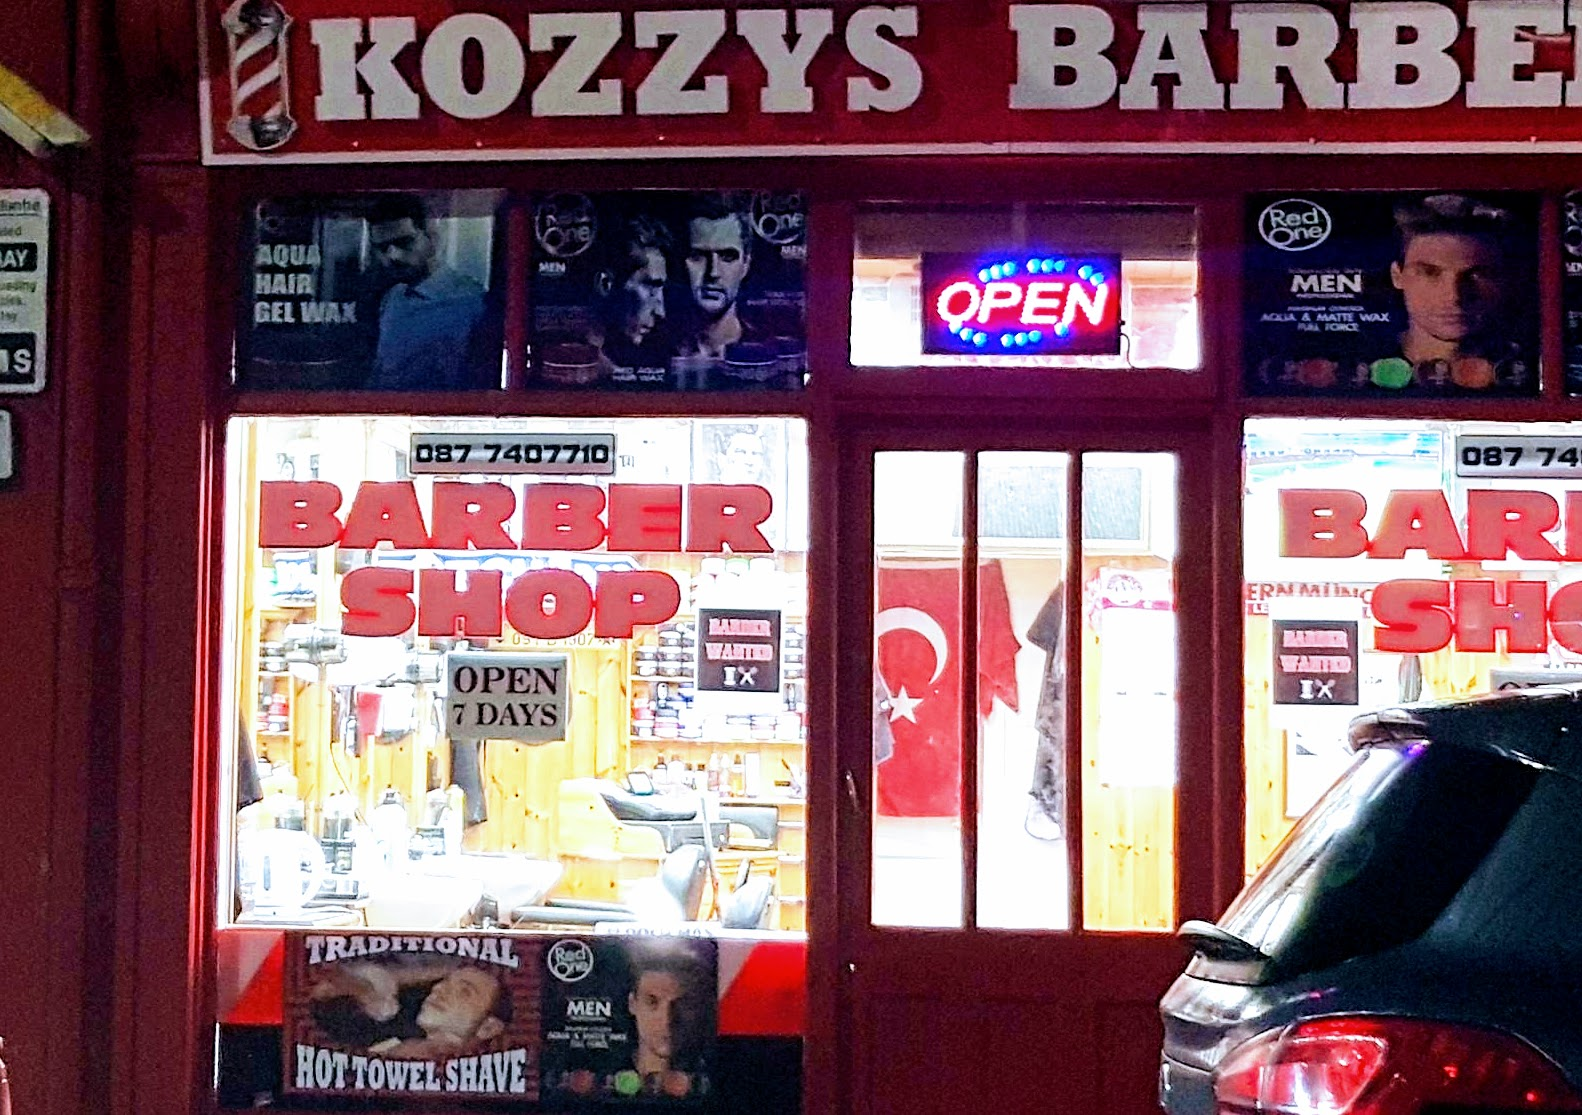 Kozzys galway city centre phone 087 7407710.